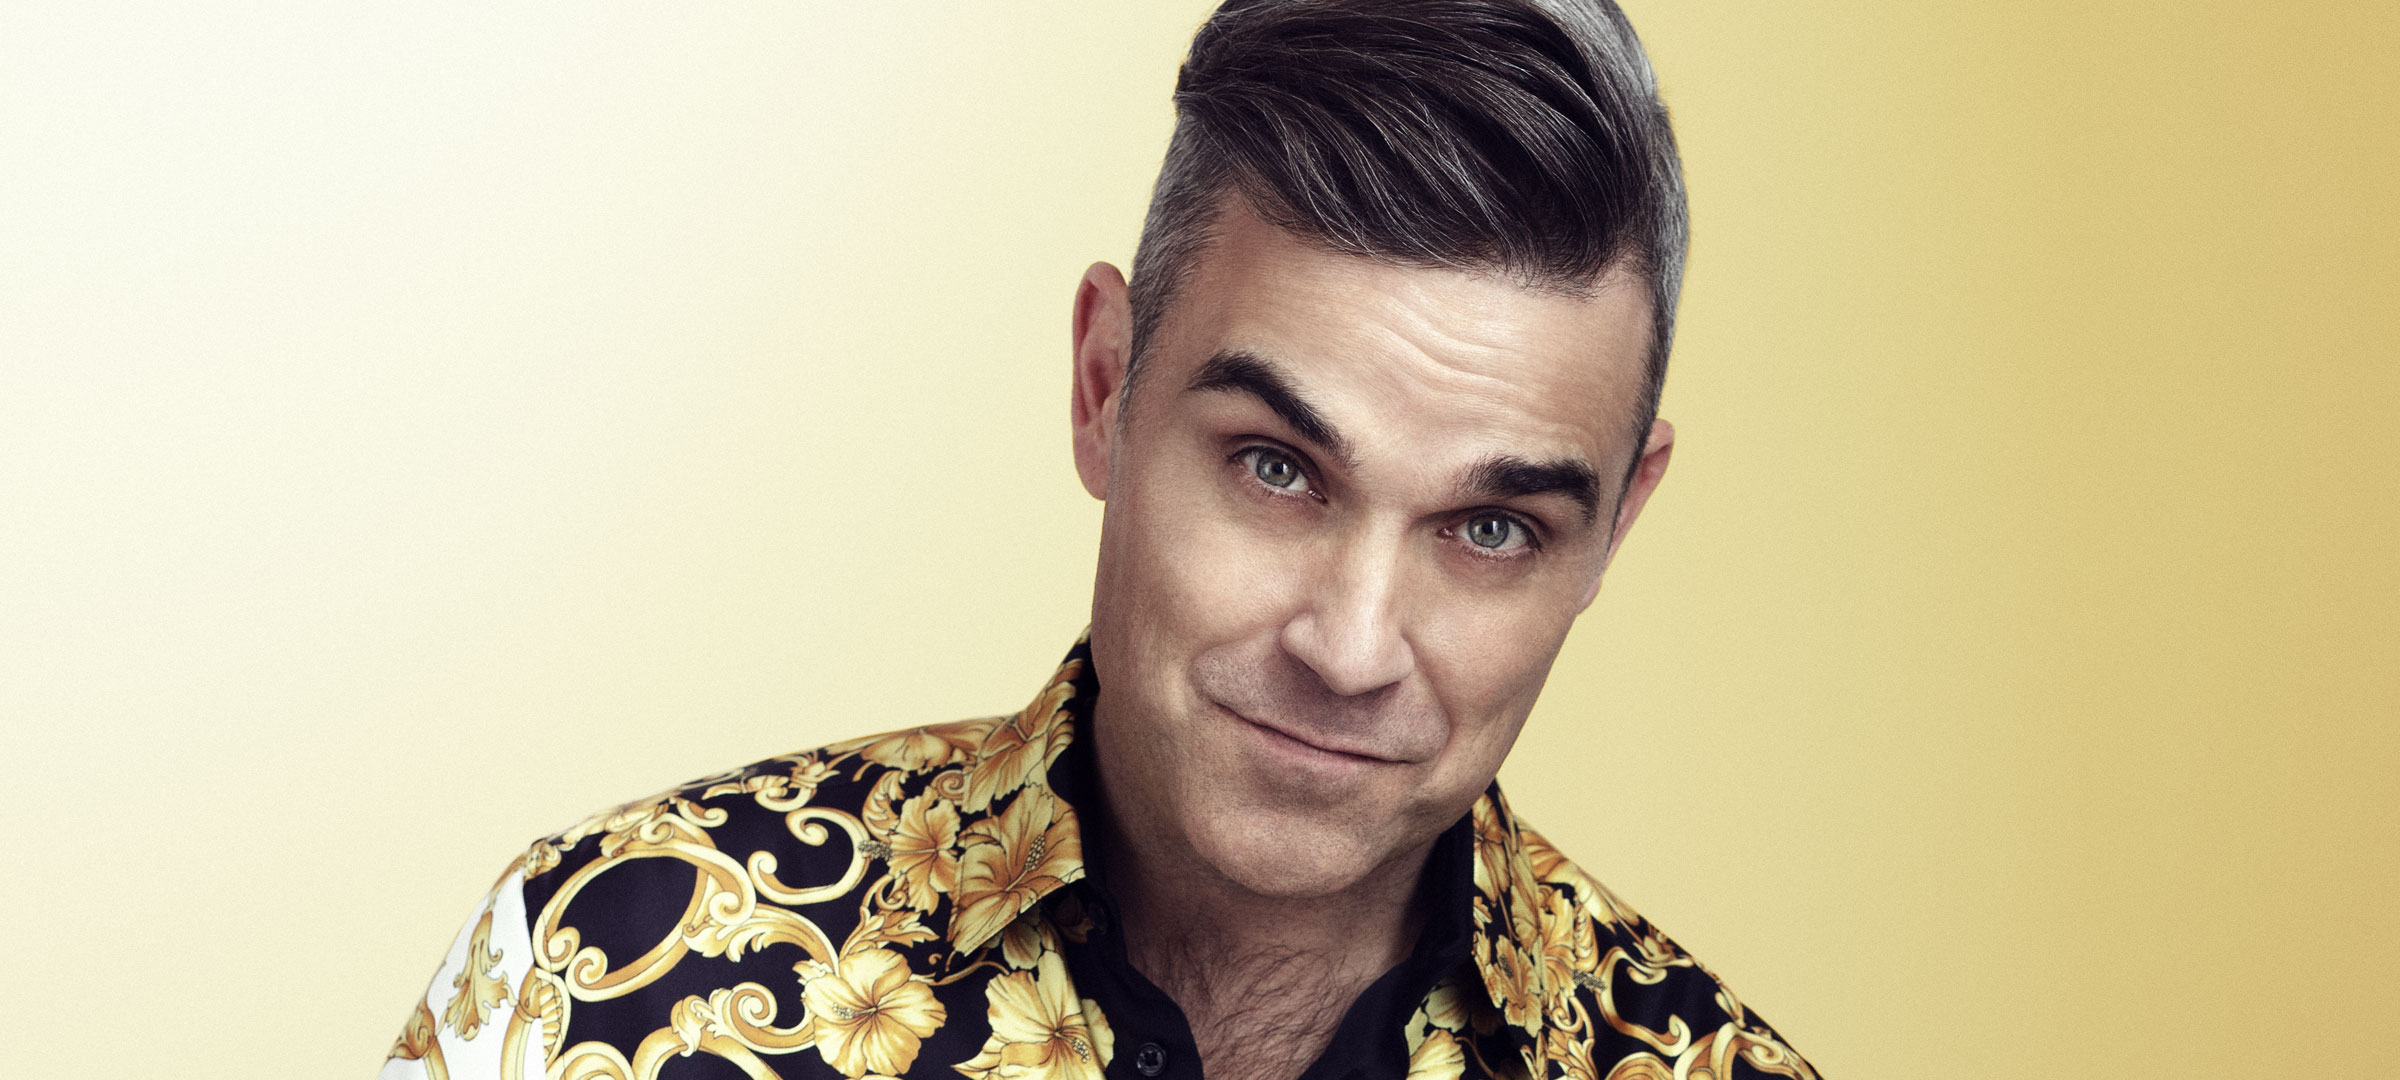 https://d21bt7jppox9s4.cloudfront.net/media/5714/robbiewilliamsheader.jpg